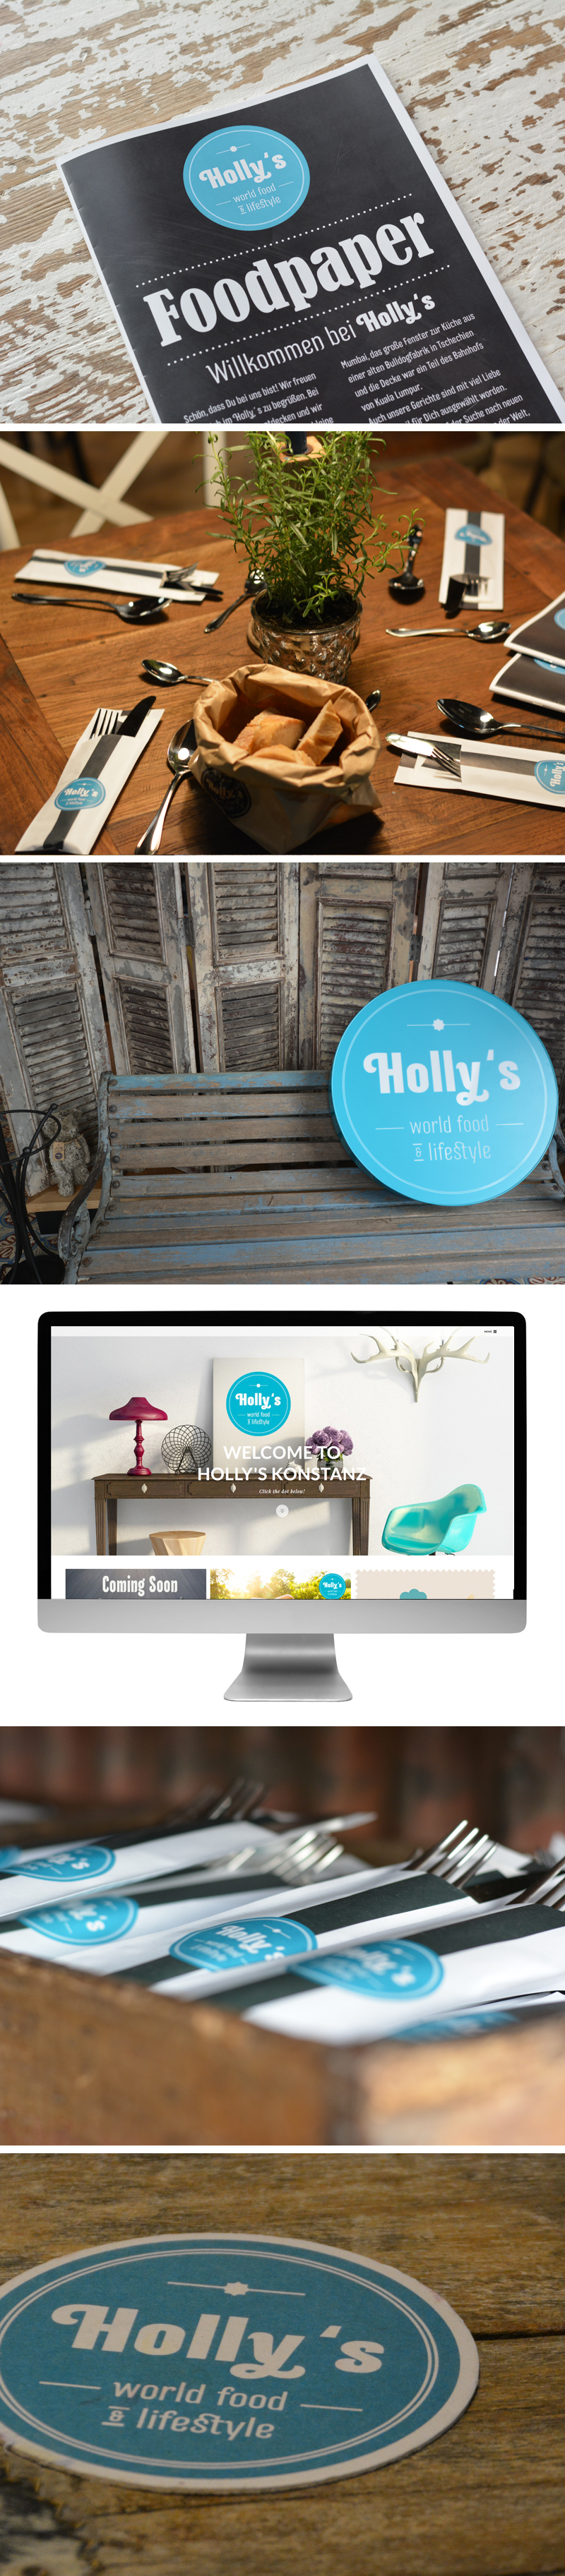 referenz-hollys-worldfood-lifestyle